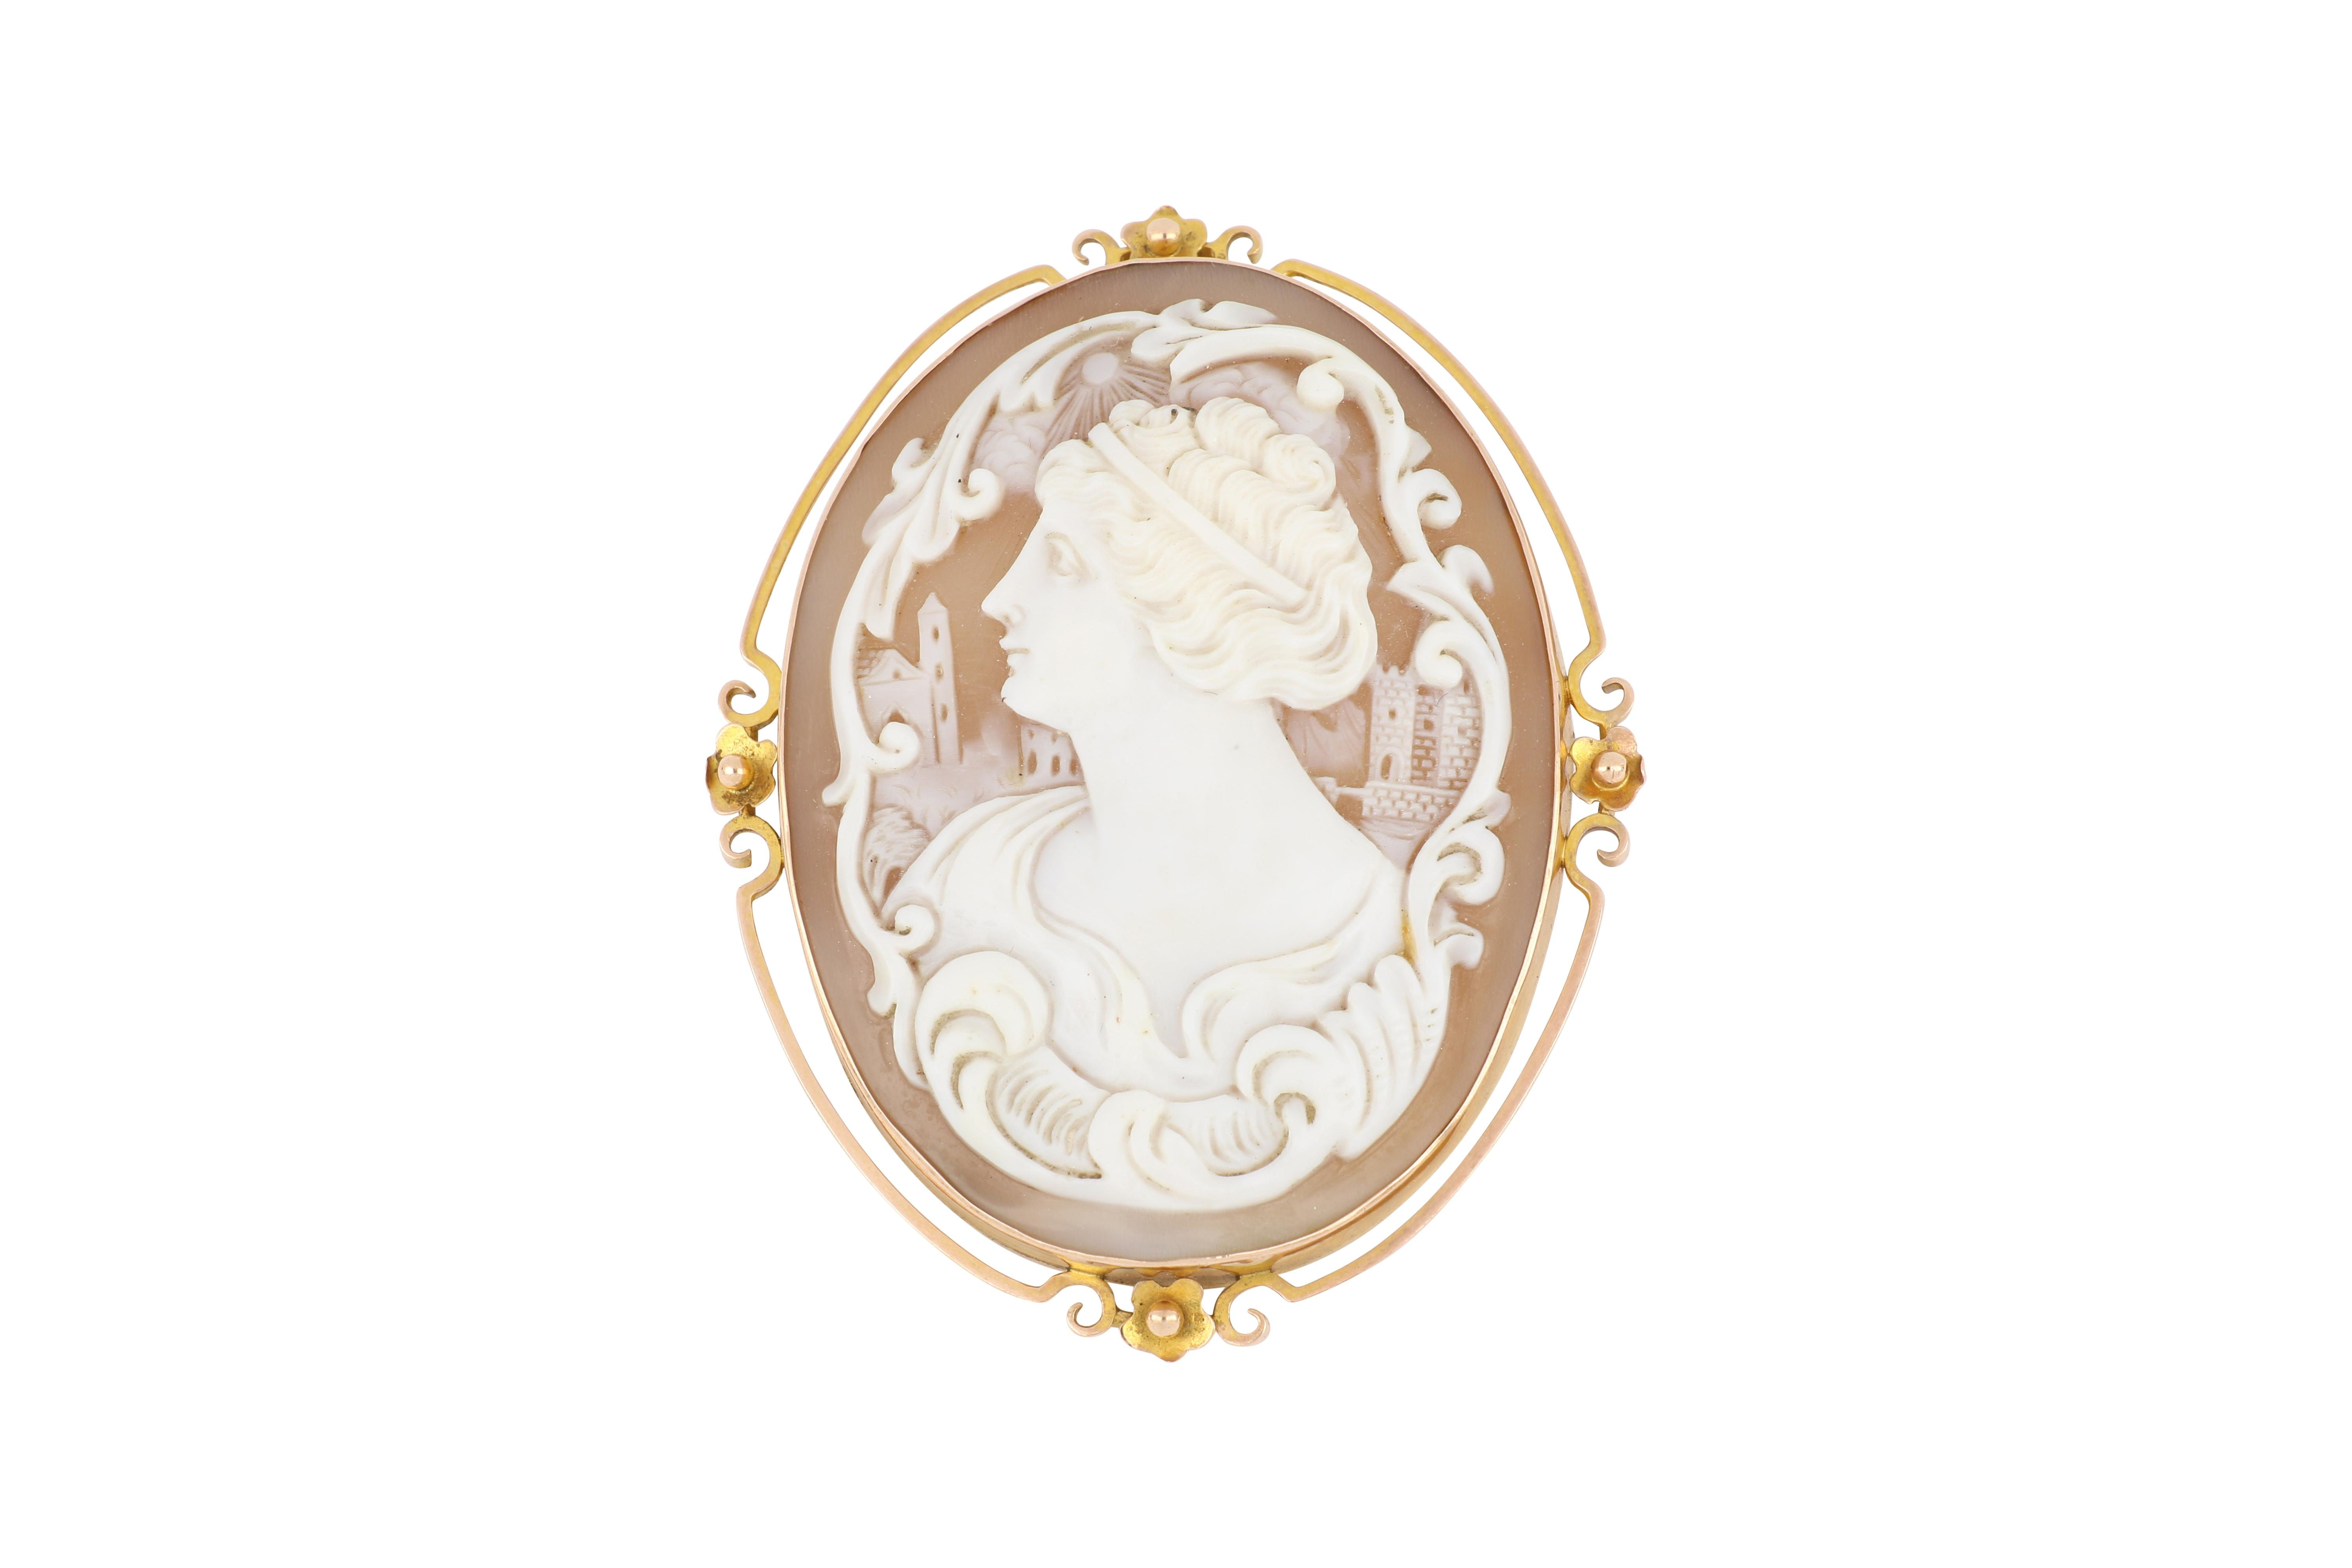 Large 9ct gold cameo brooch